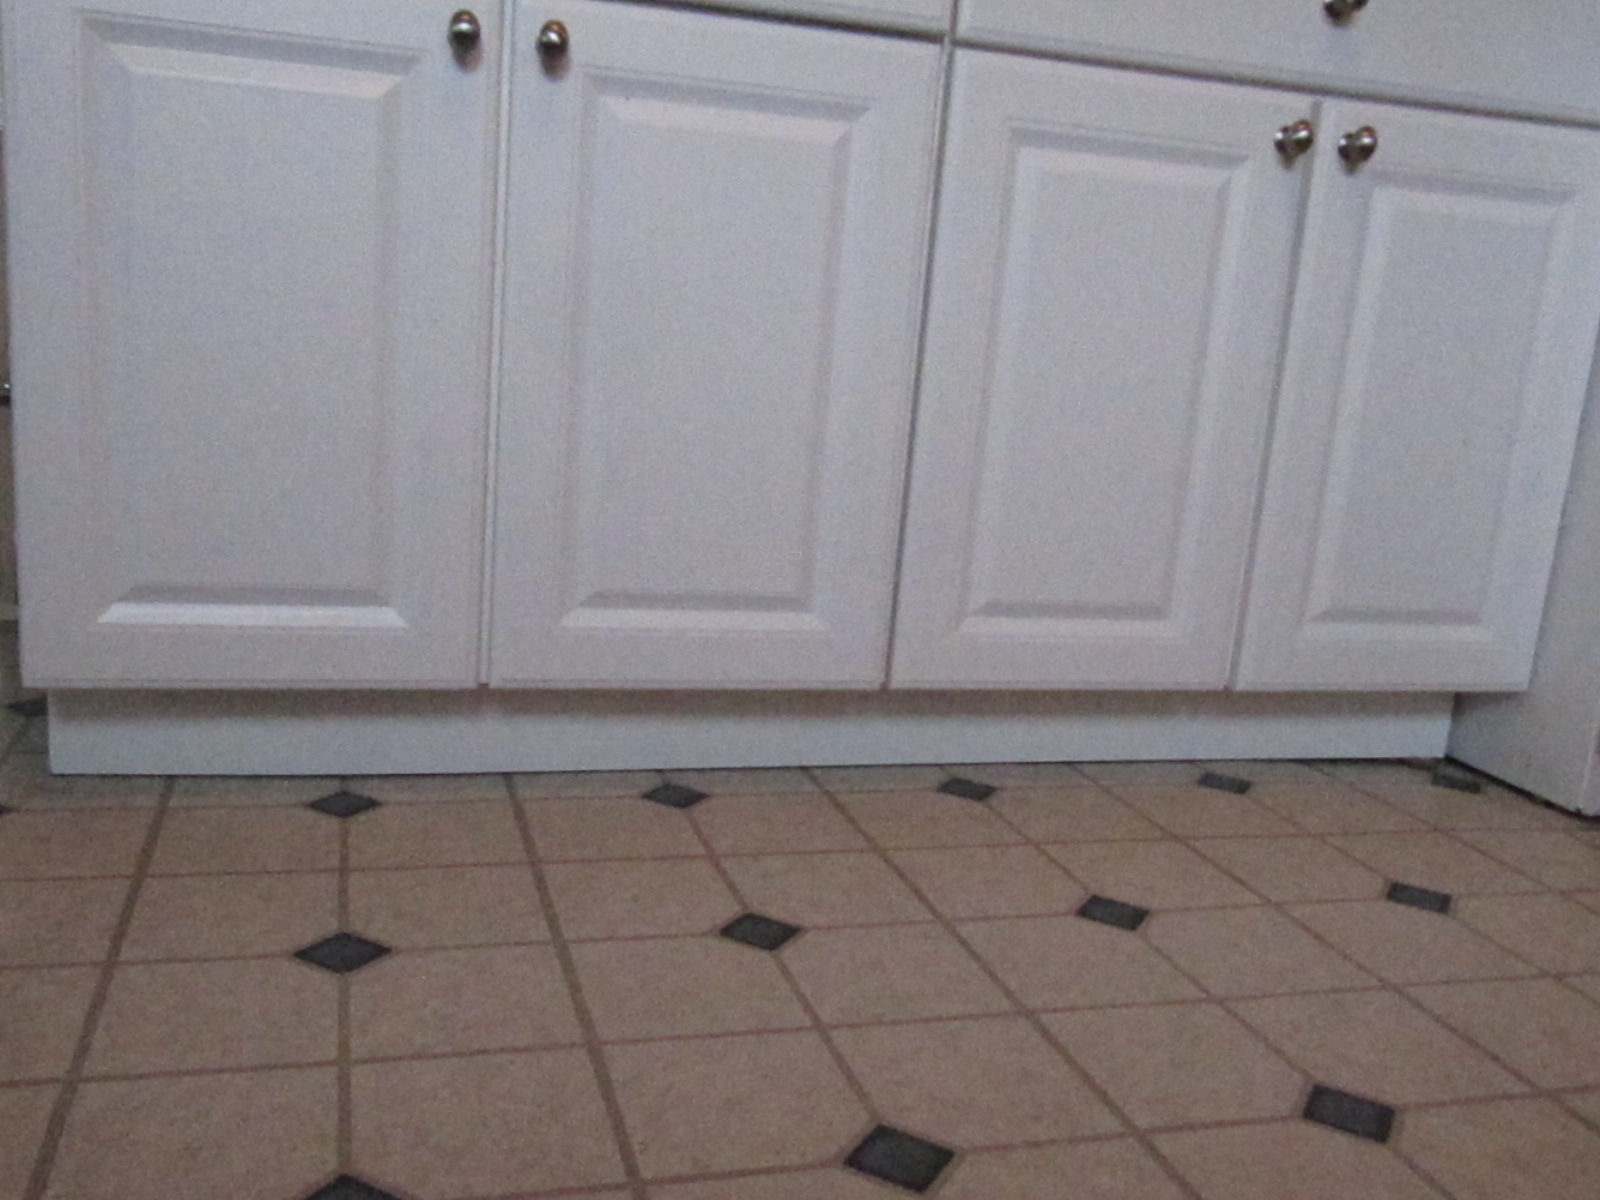 Kick Plates For Kitchen Cabinets